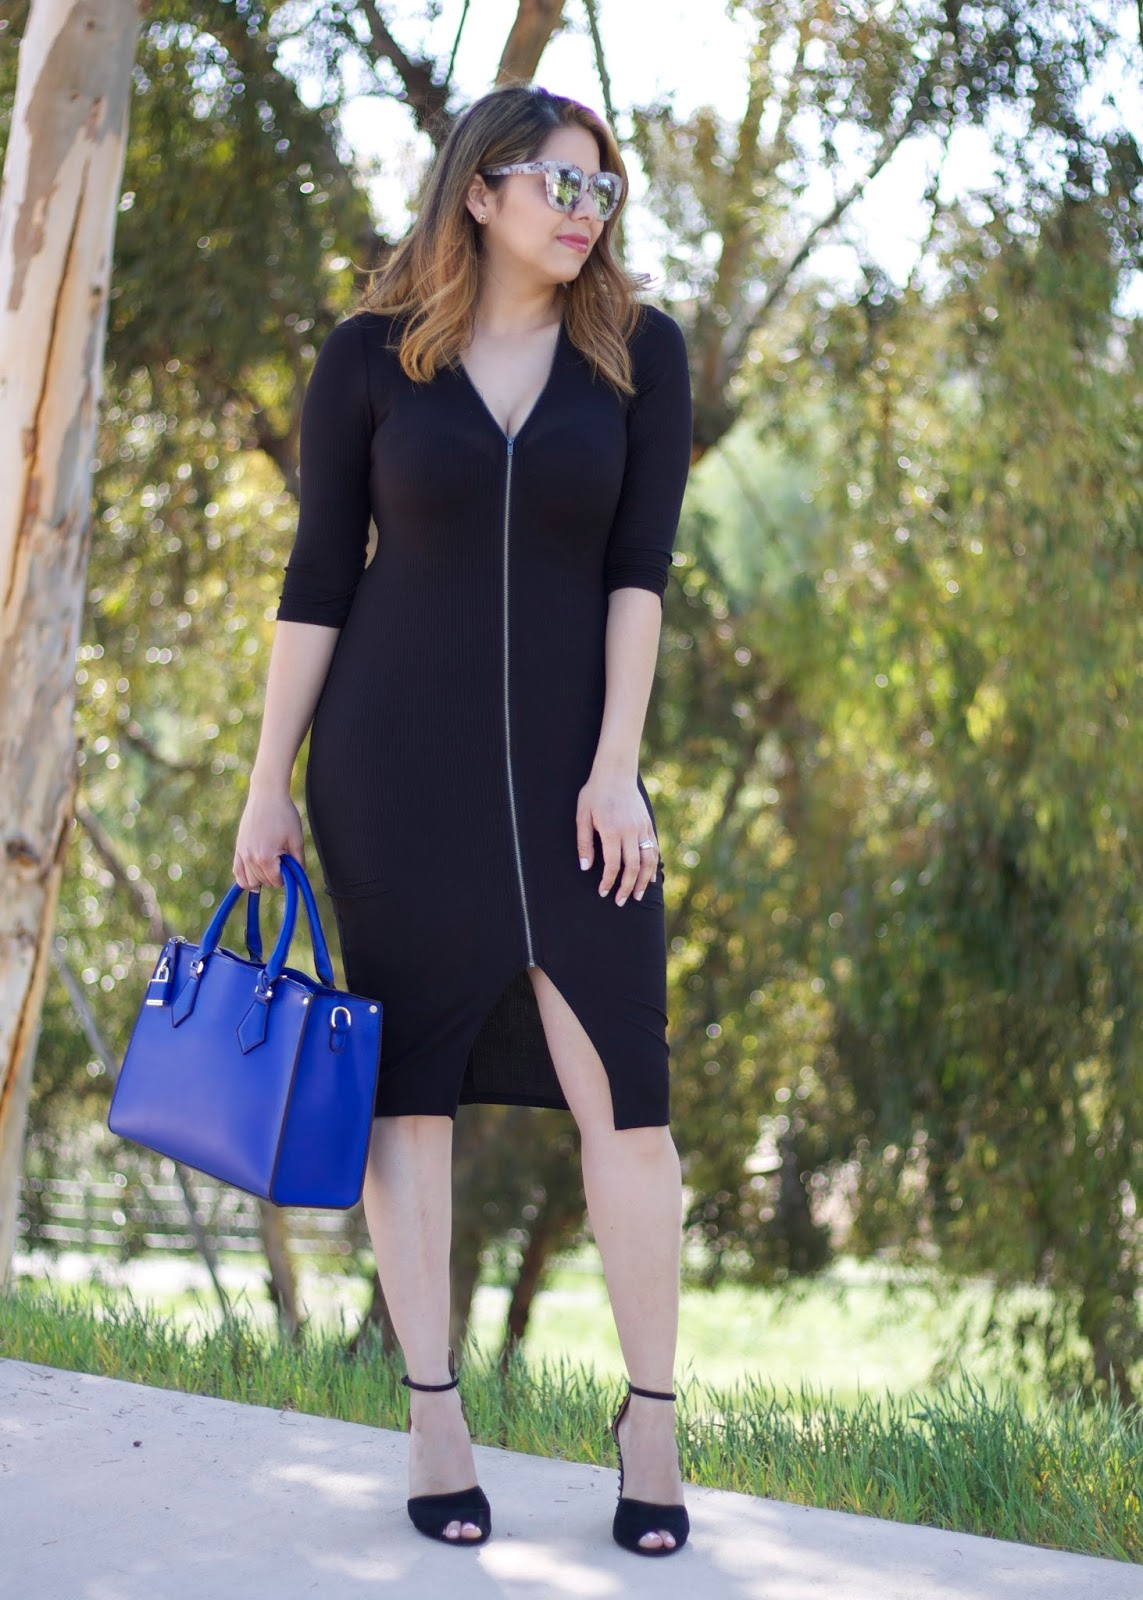 bloggers in their thirties, latina fashion blogger, outfit of the night 2016